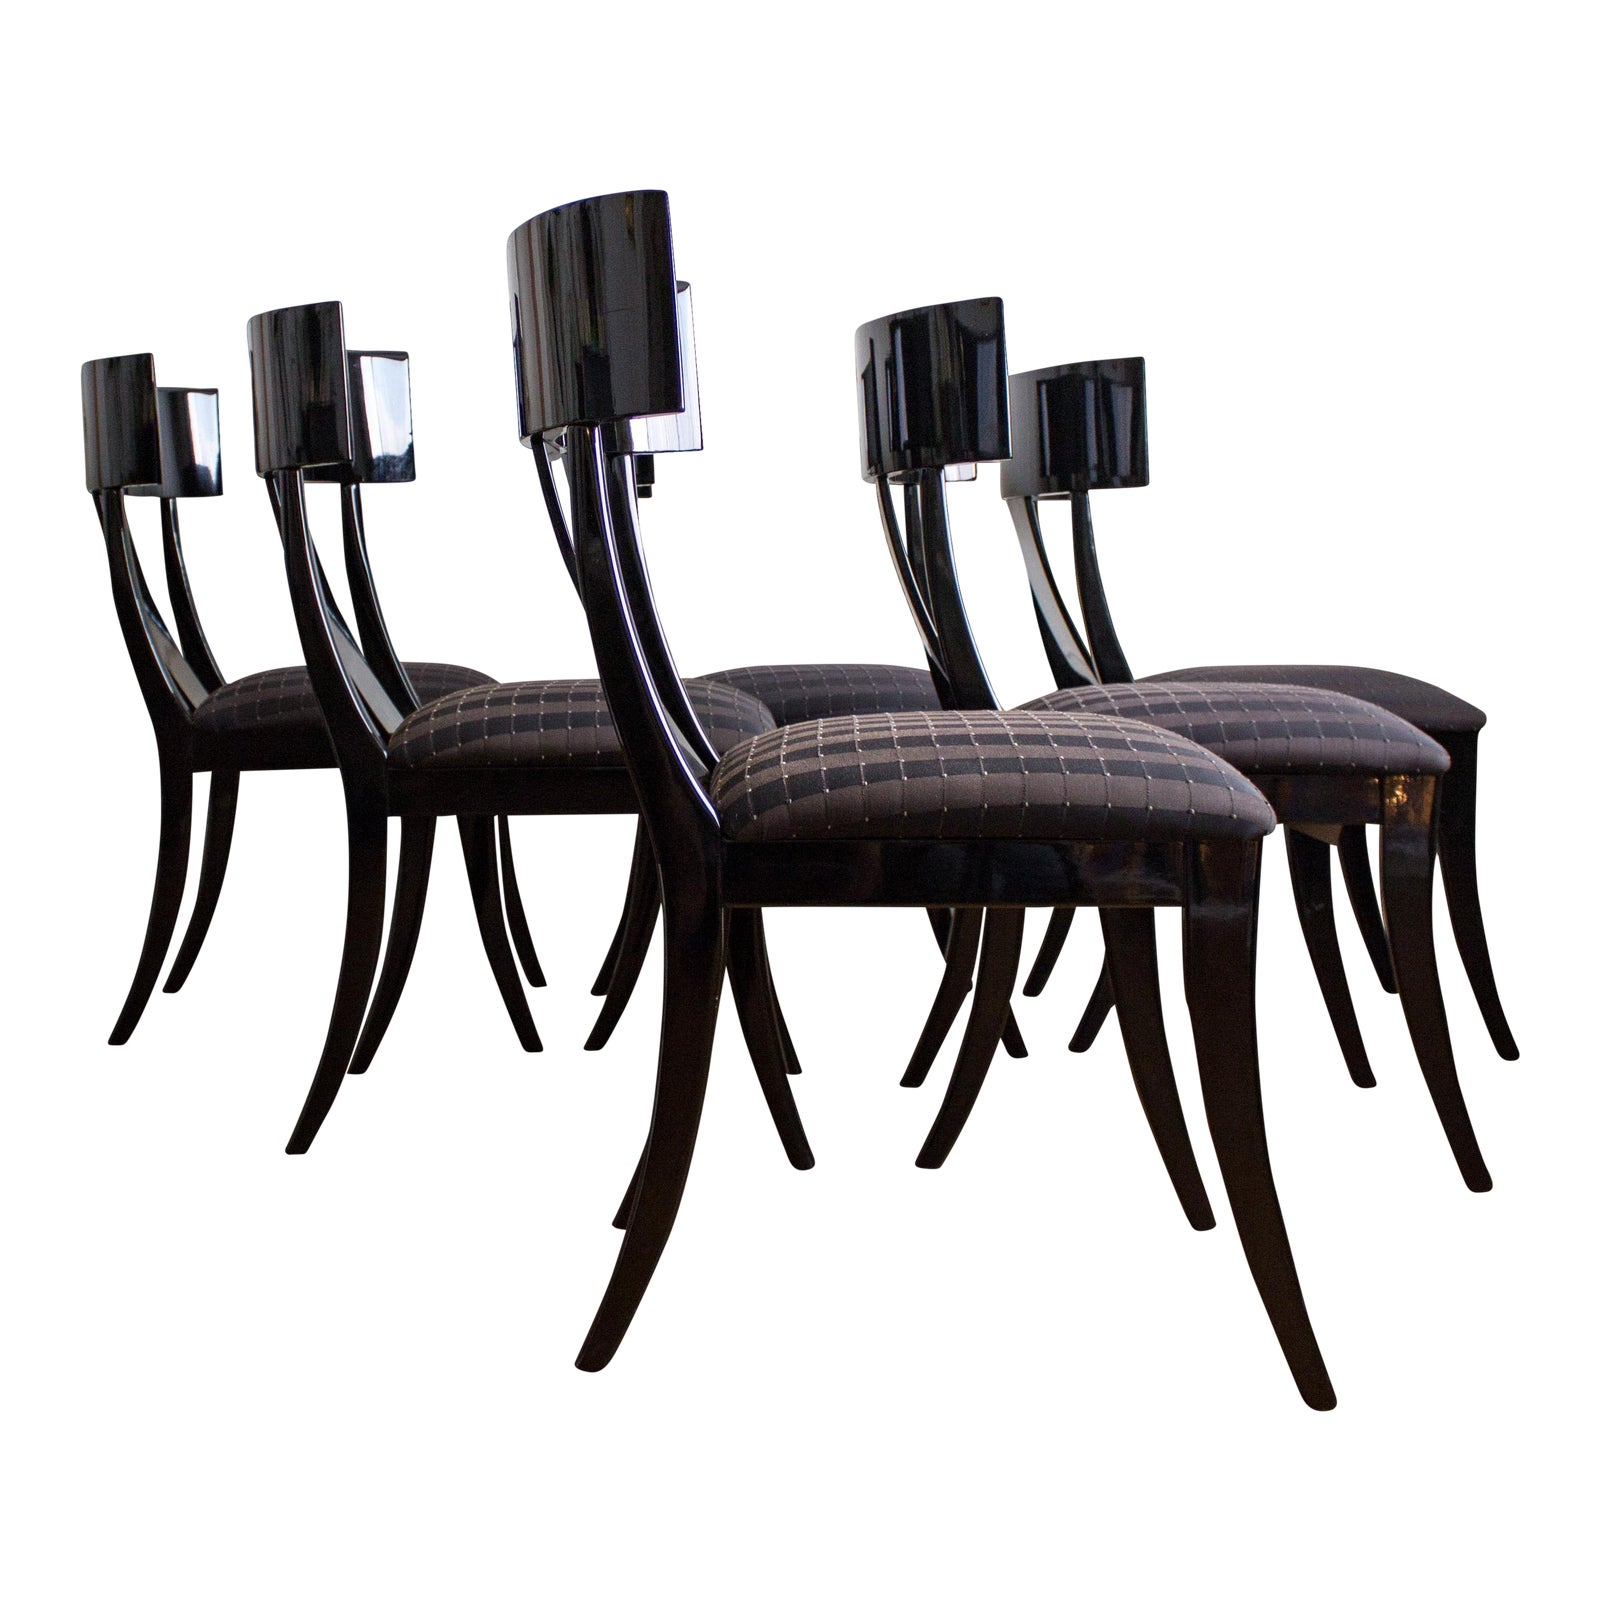 Black Lacquer Dining Room Chairs: Made In Italy By Pietro Costantini